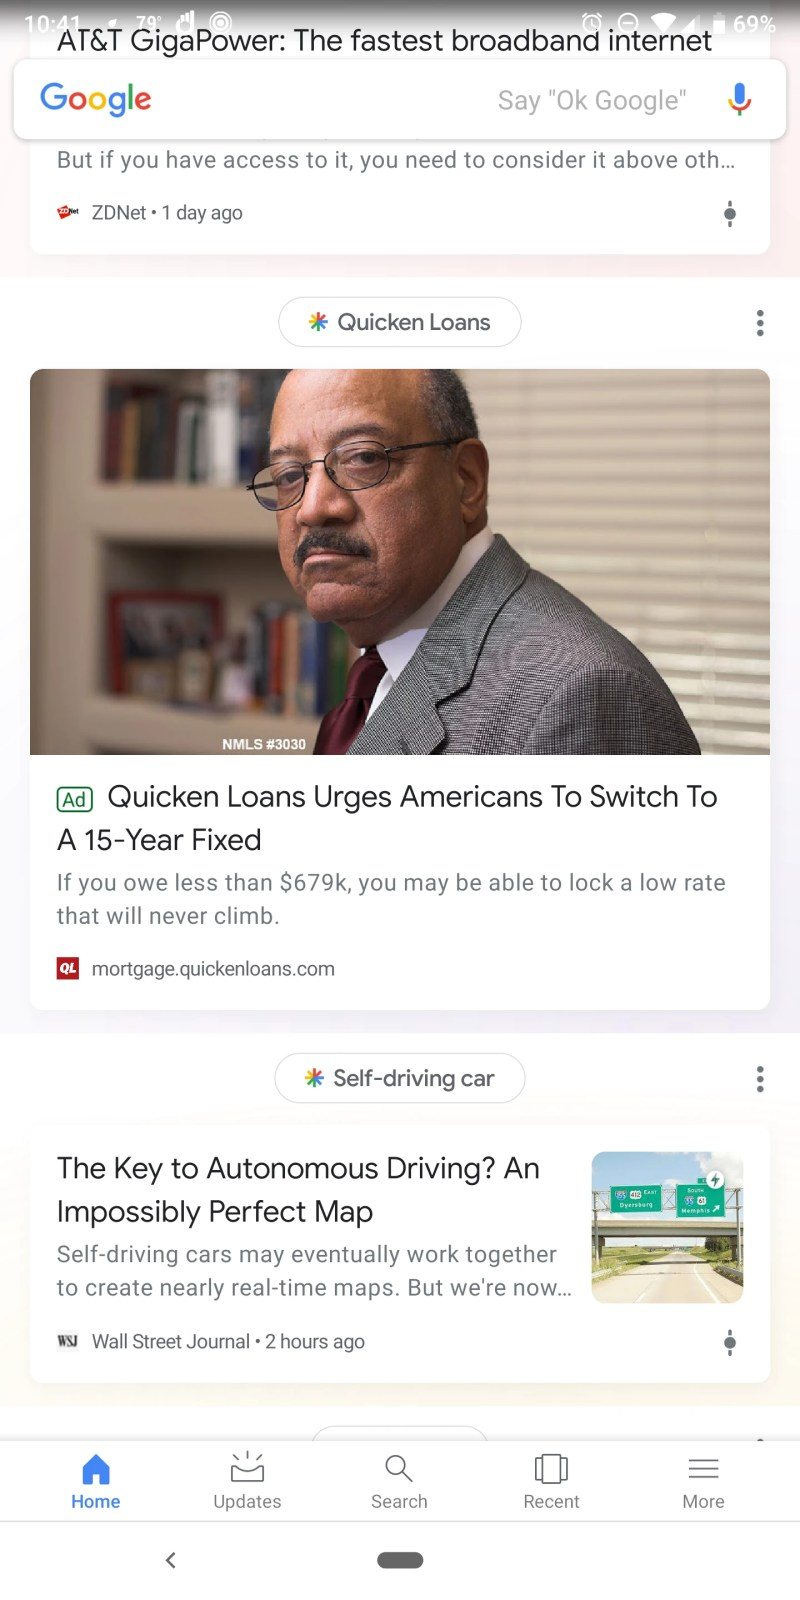 Google Discover (Google Feed) Ad